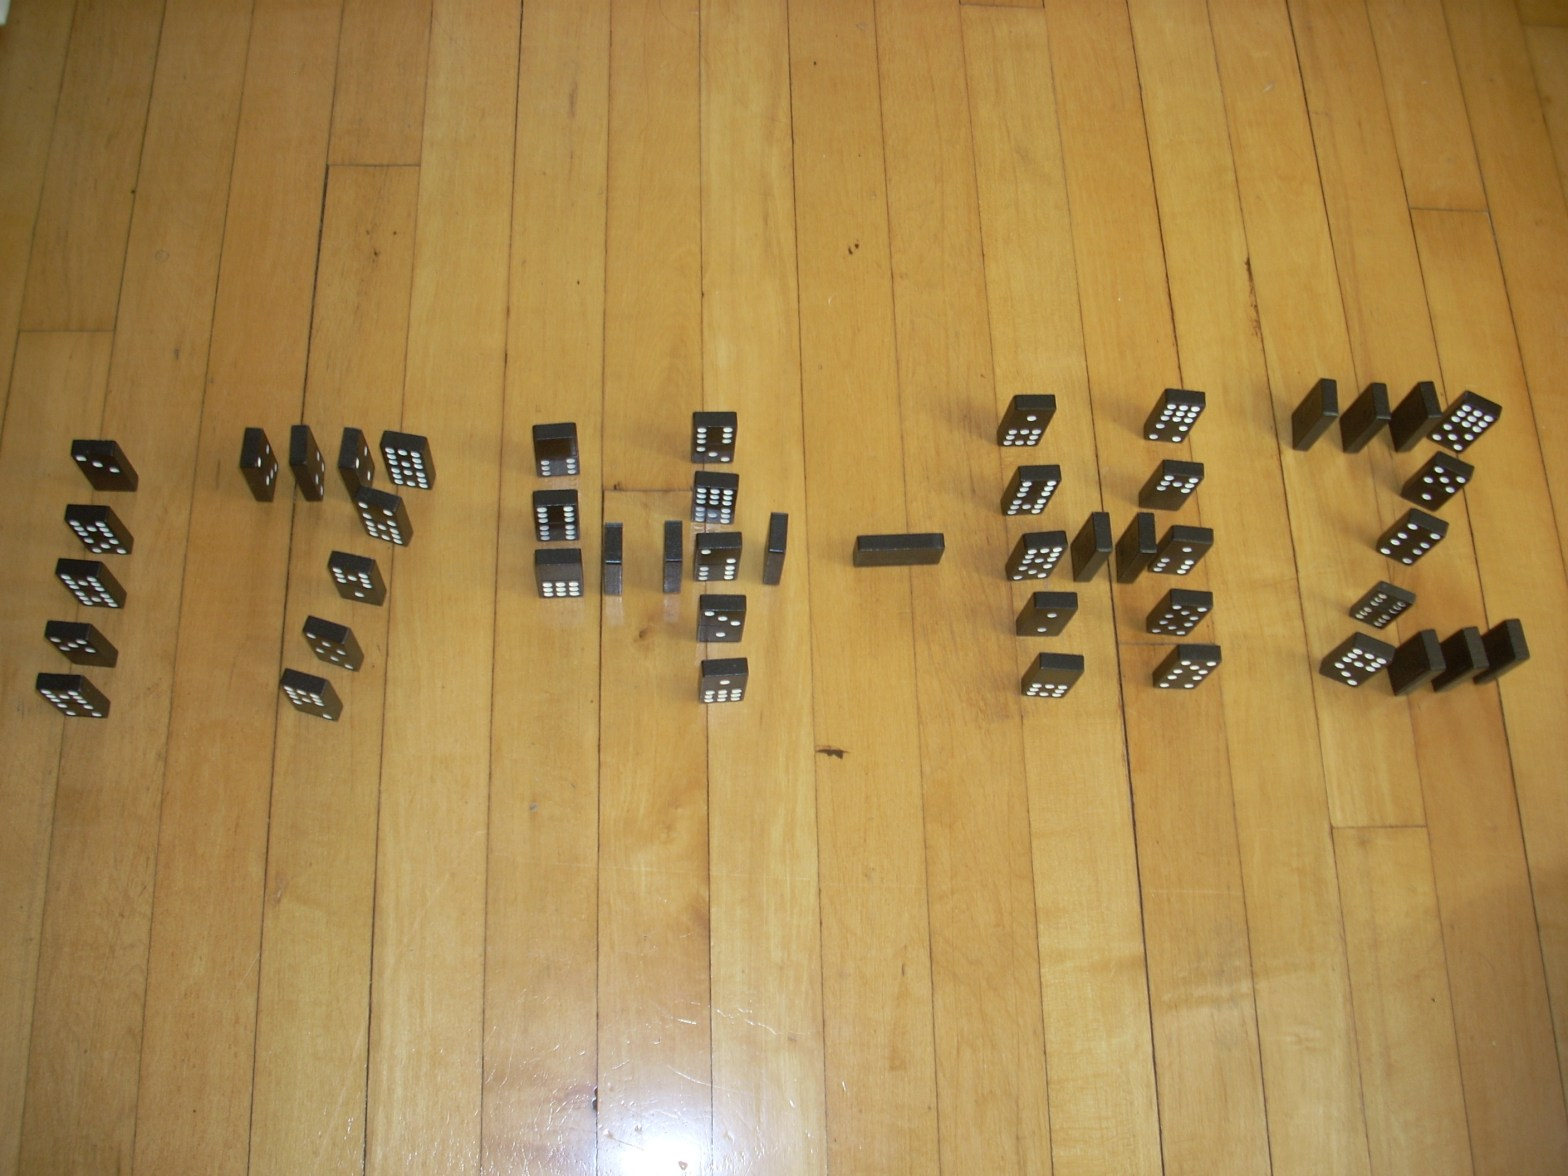 photo of standing dominoes spelling 174 - HZ which is the frequency to alleviate pain